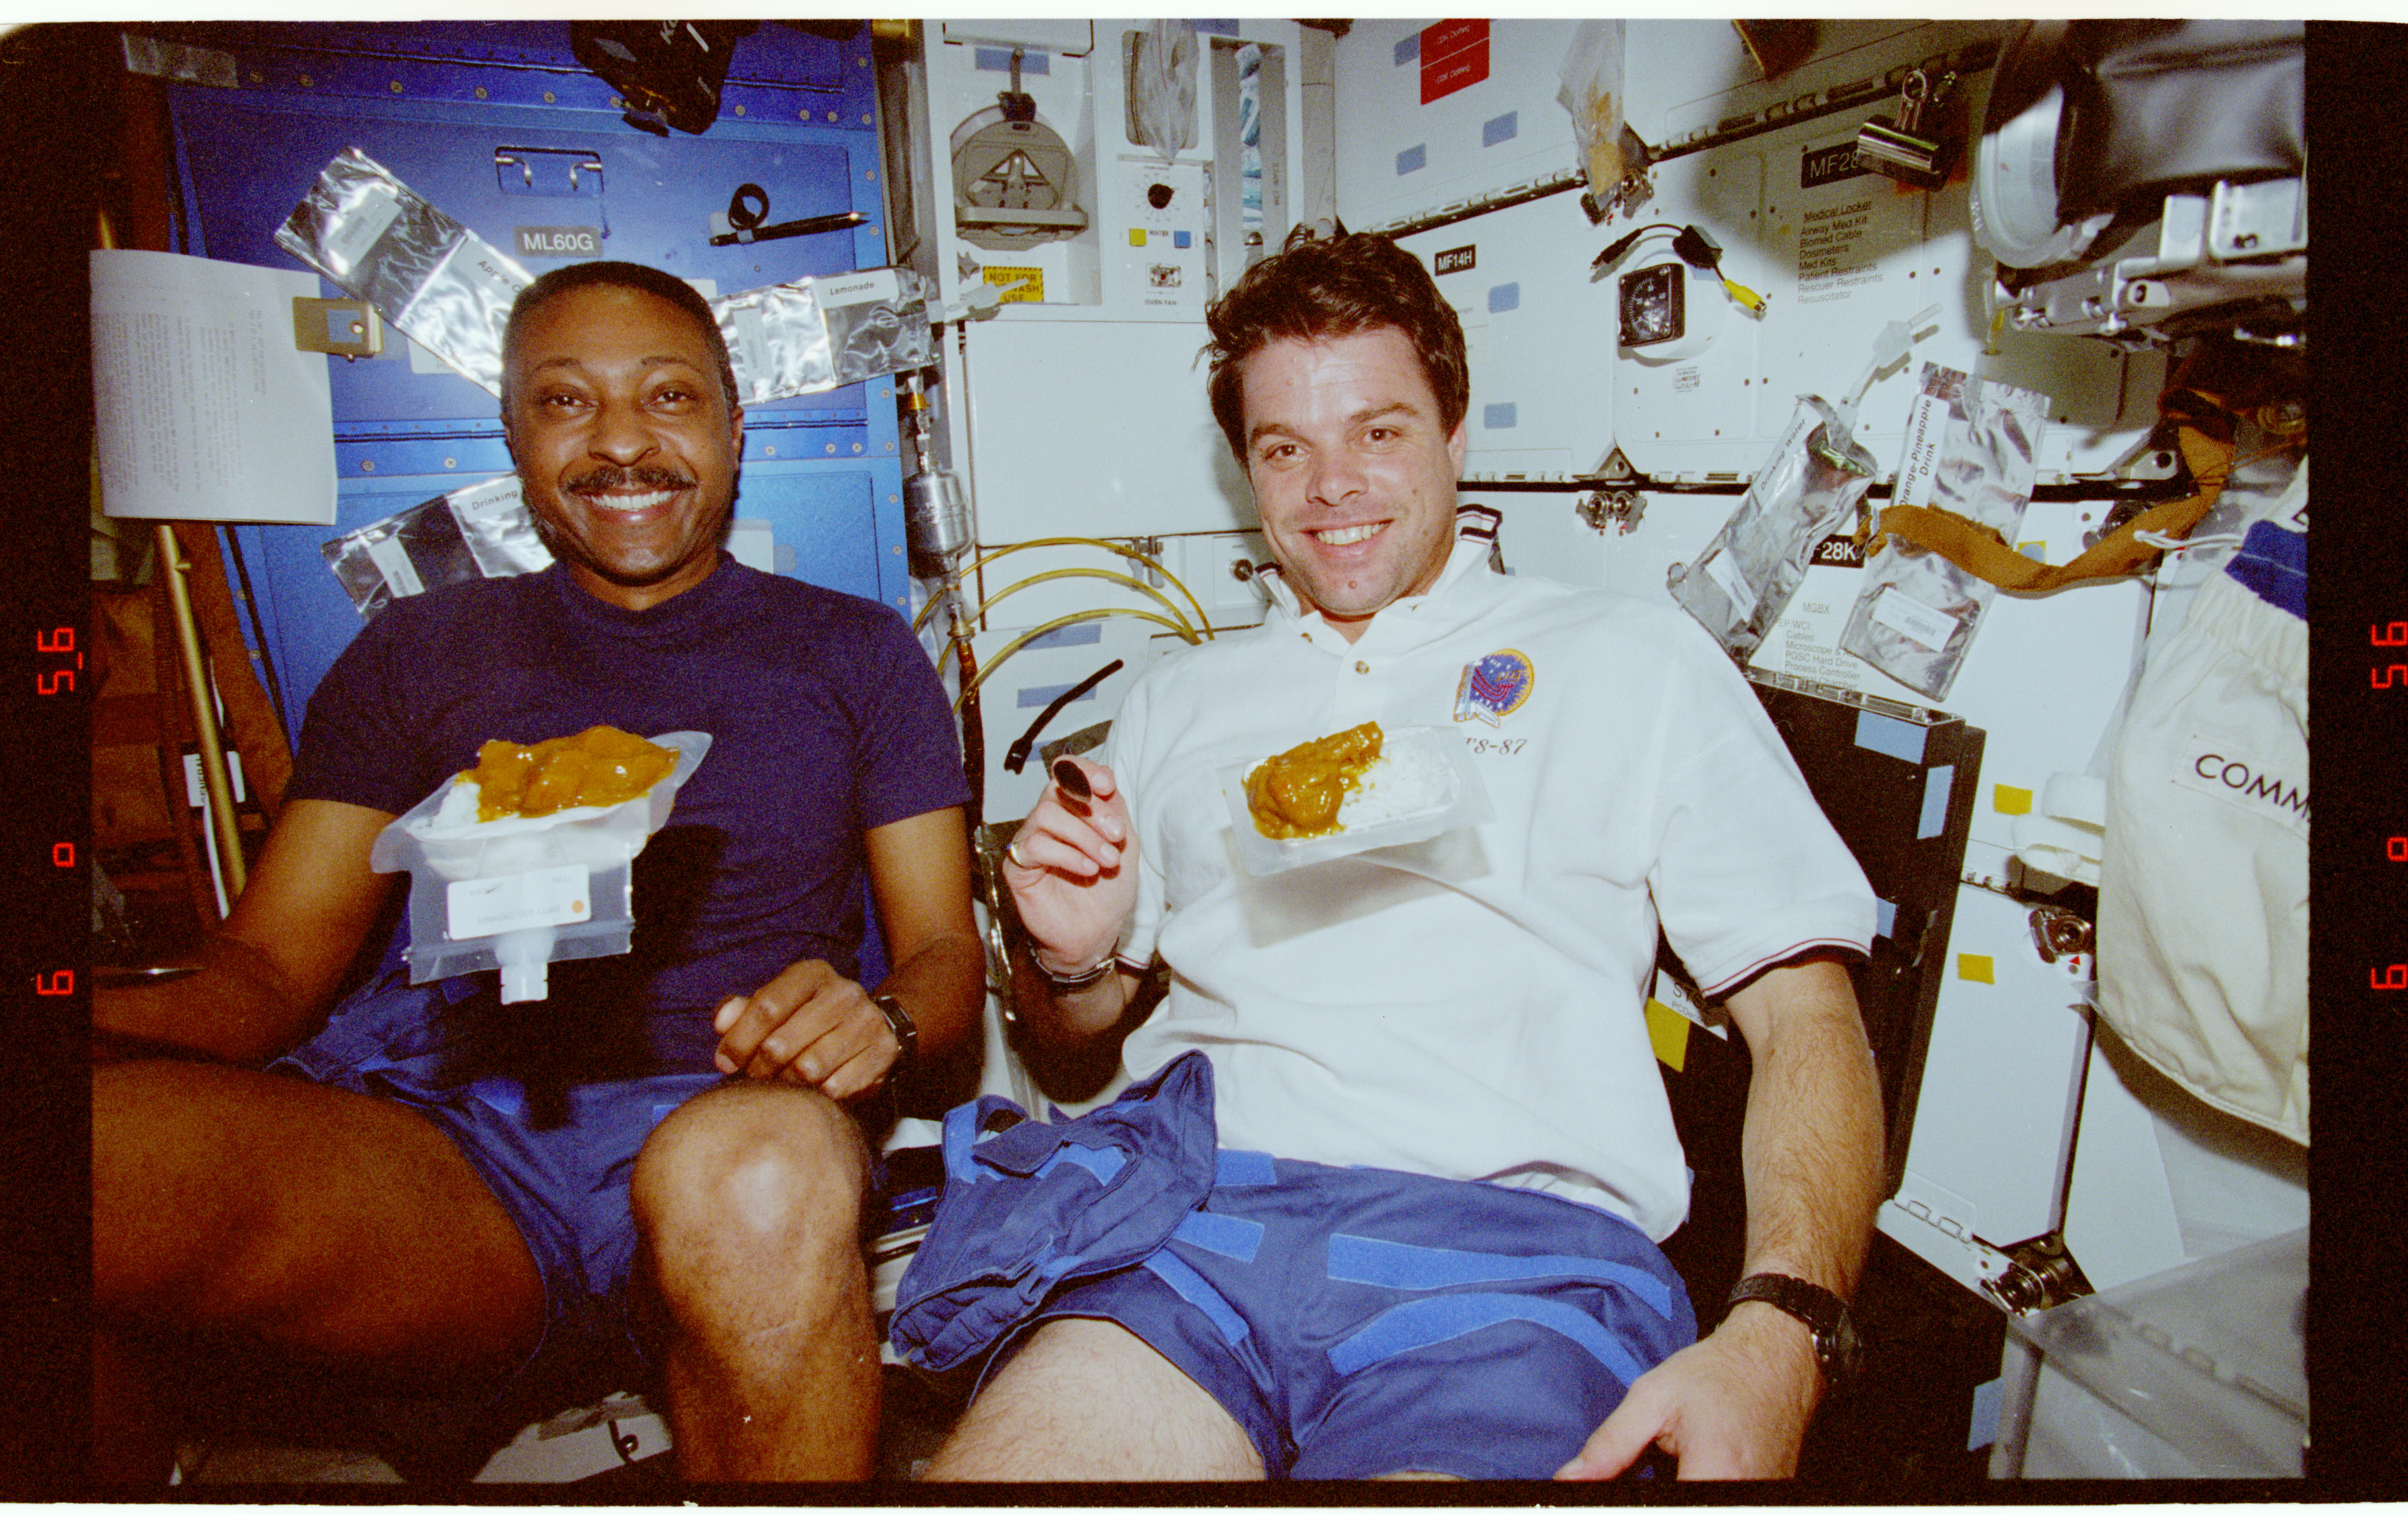 STS087-375-018 - STS-087 - Crewmembers share a meal in the middeck